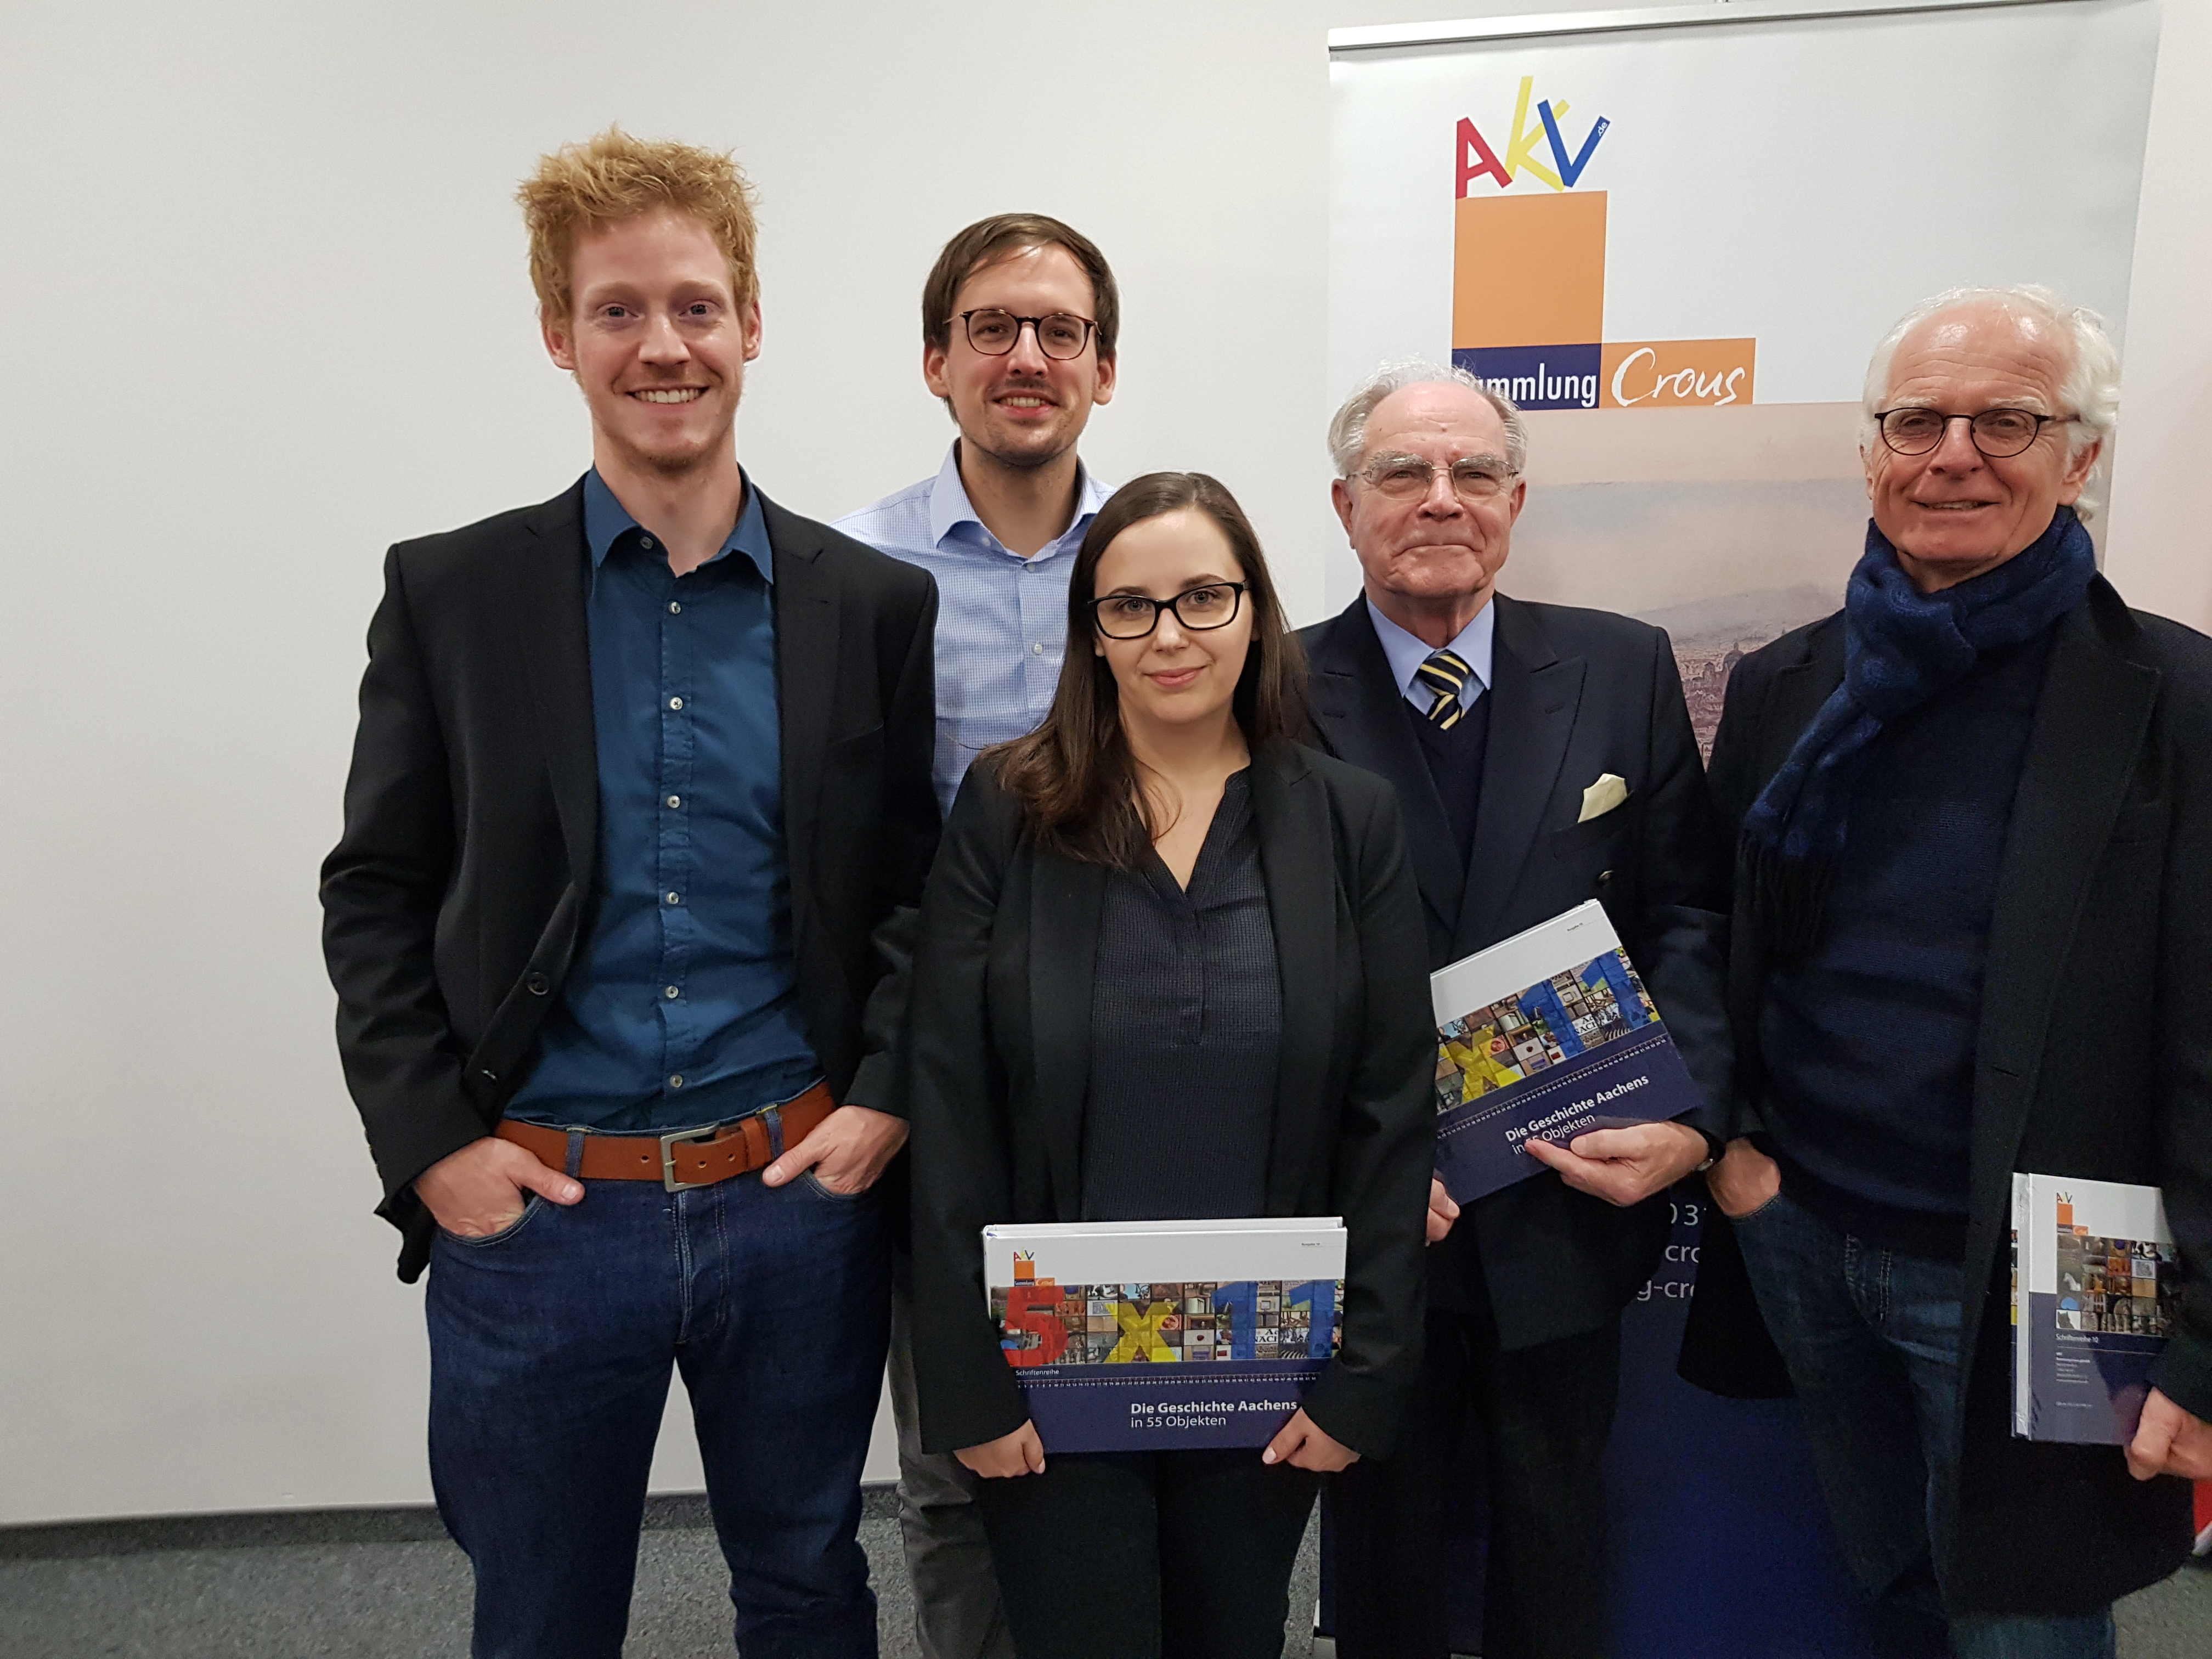 Tobias Dewes, Robert Peters, Lena Knops, Prof. Paul Thomes v.l.n.r.